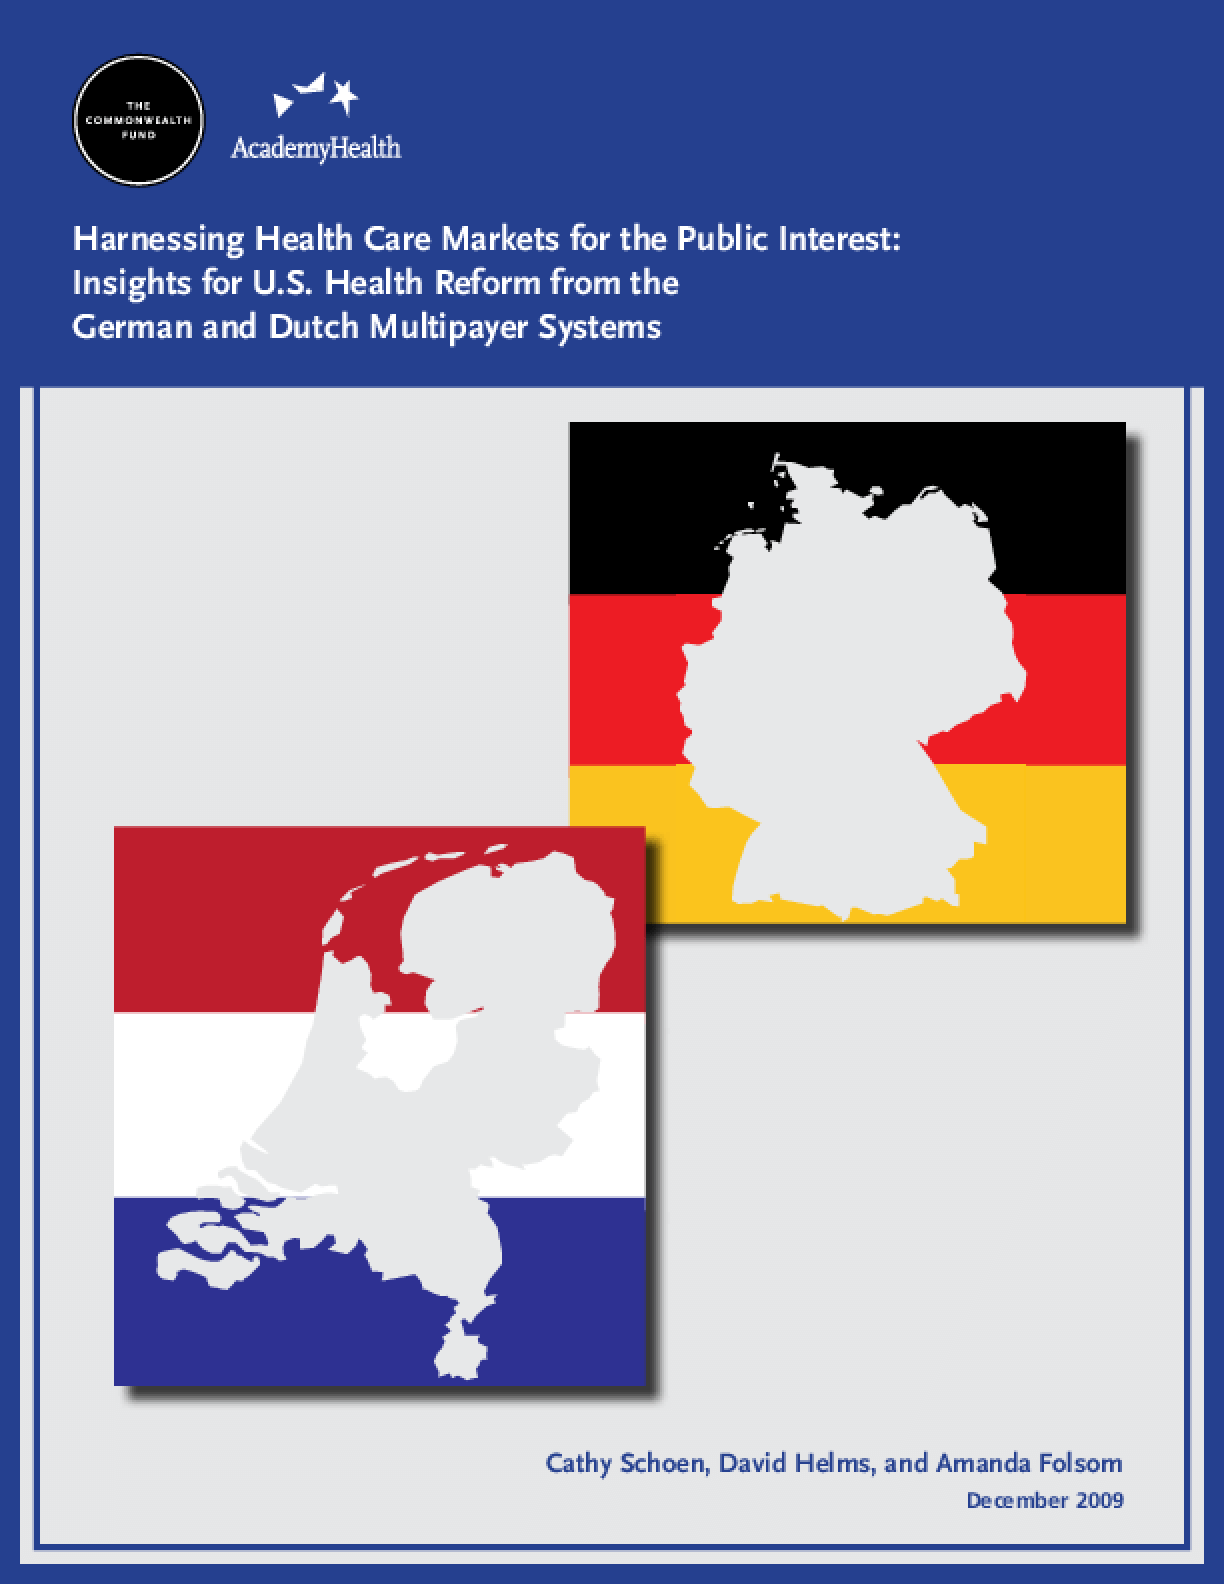 Harnessing Health Care Markets for the Public Interest: Insights for U.S. Health Reform From the German and Dutch Multipayer Systems